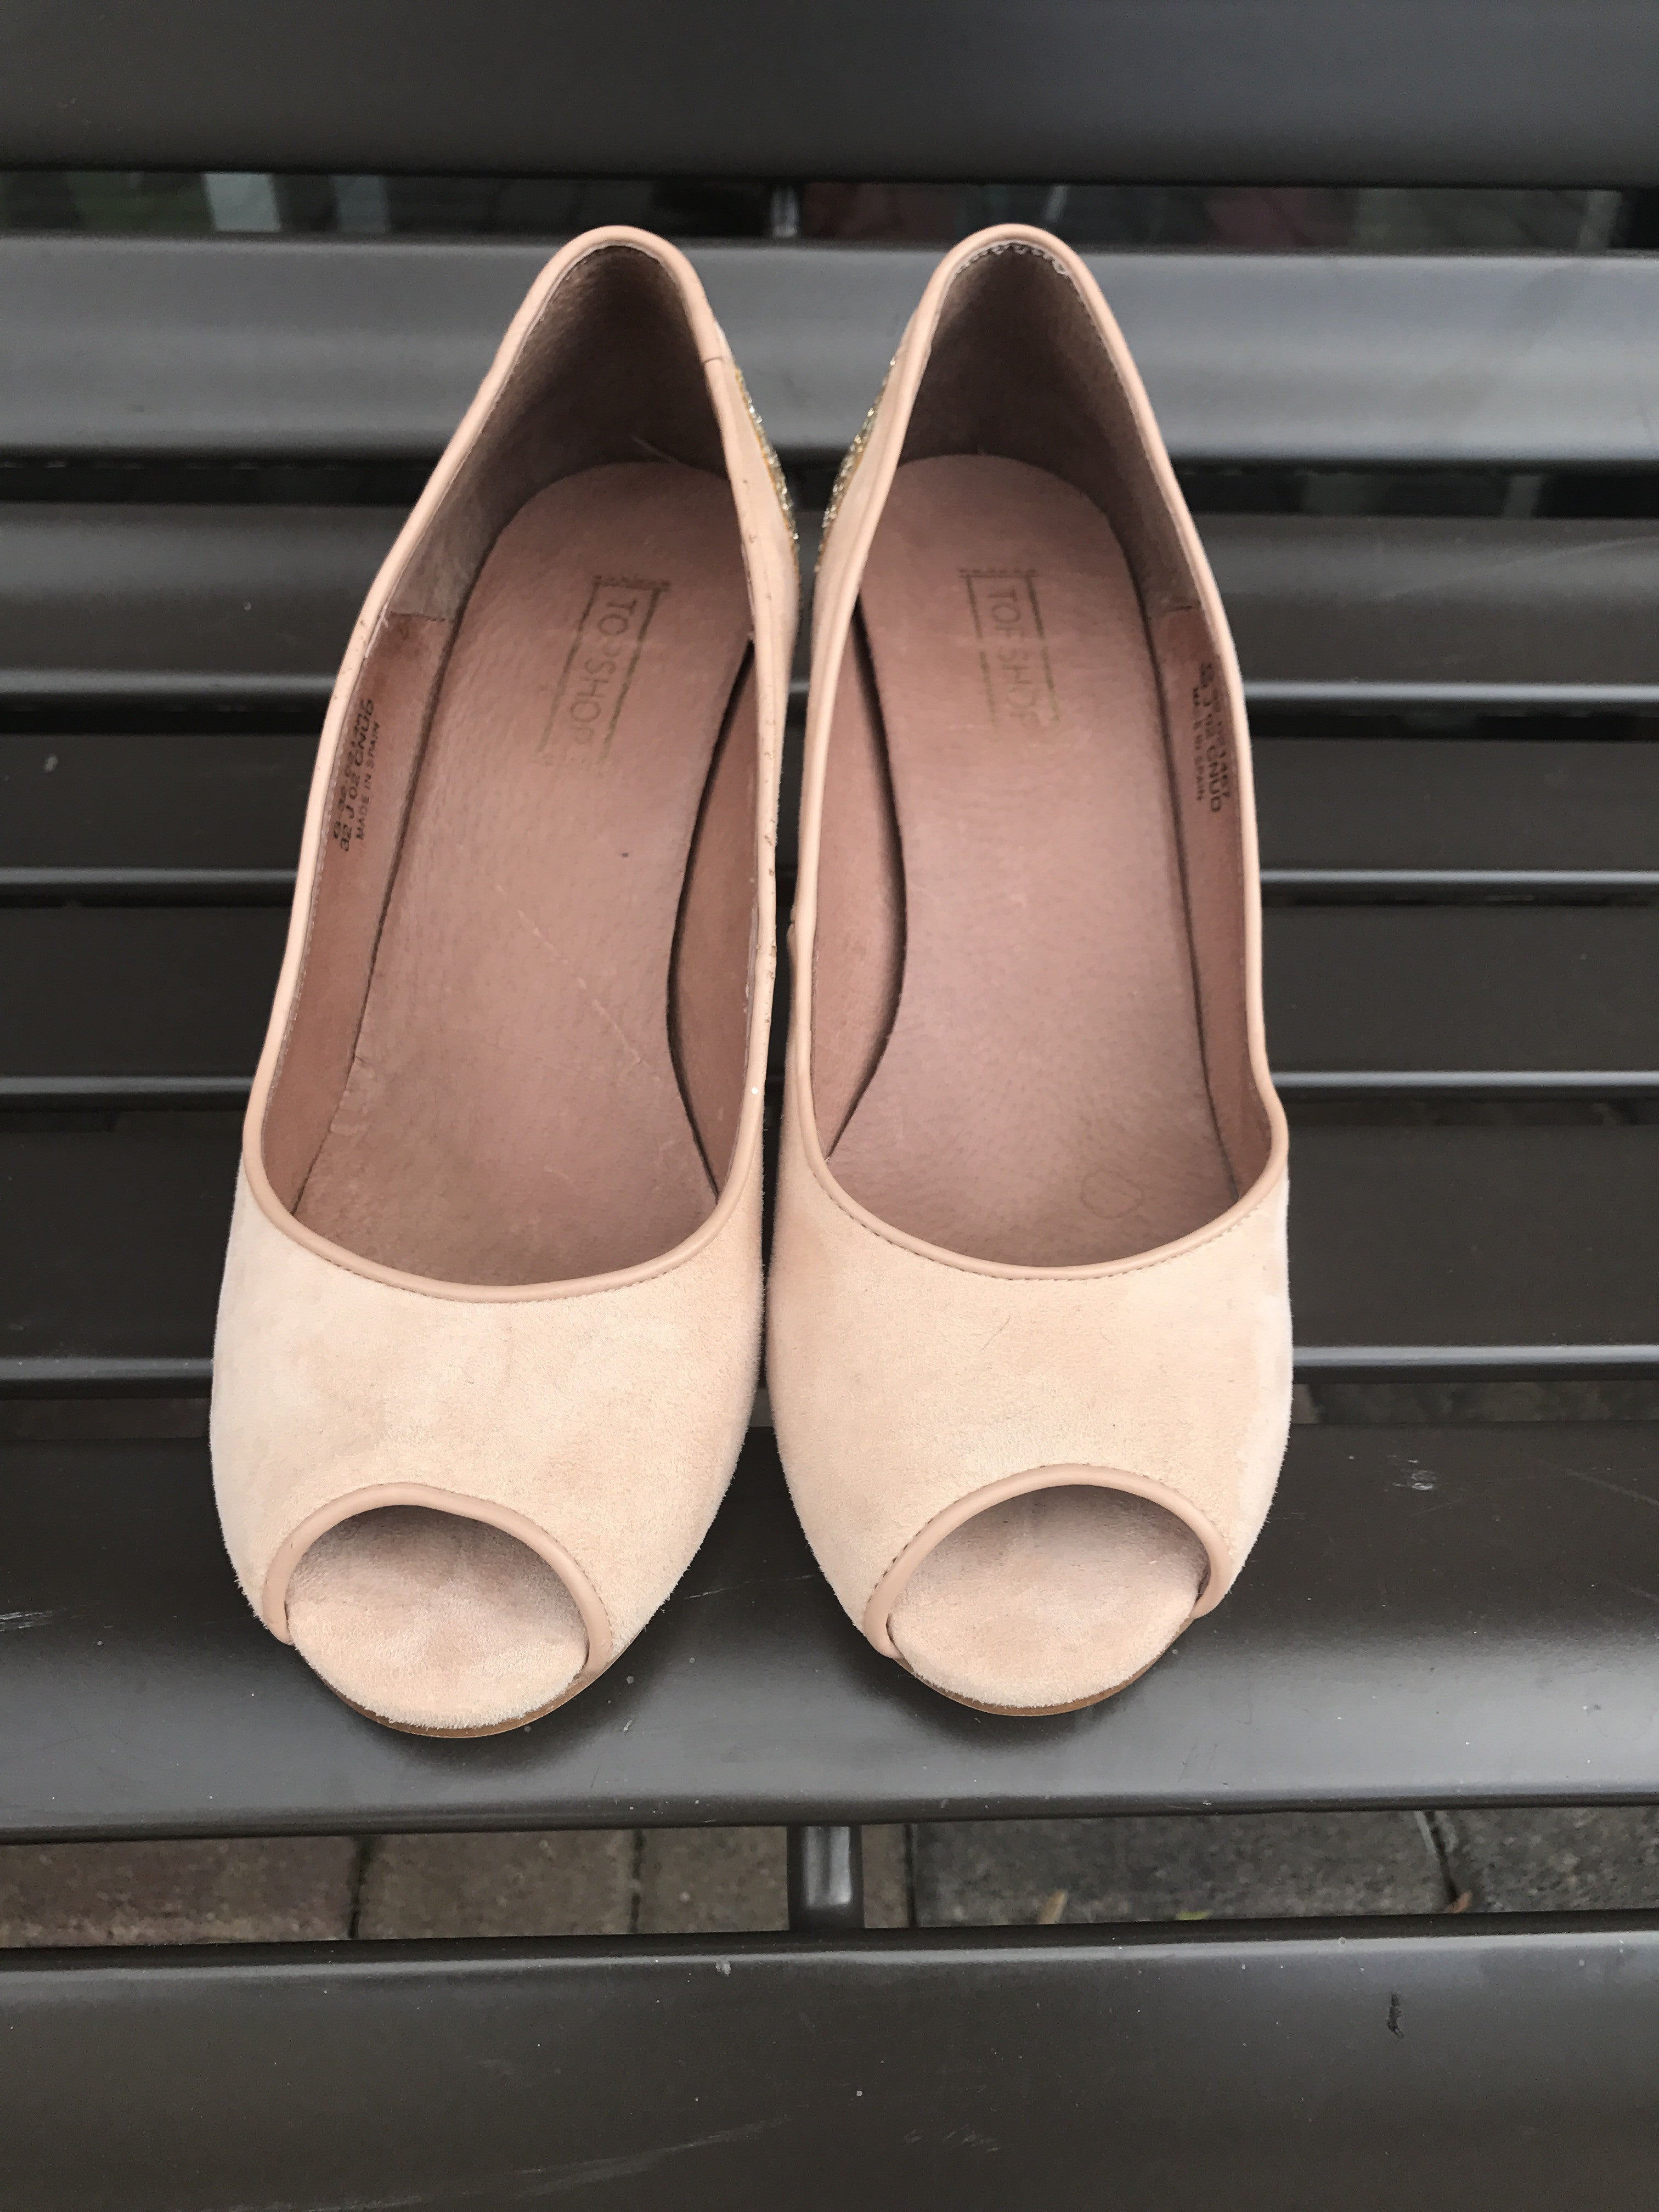 Top Shop Nude/Pale Pink Suede Gold Glitter Peep Toe: Size 11.5